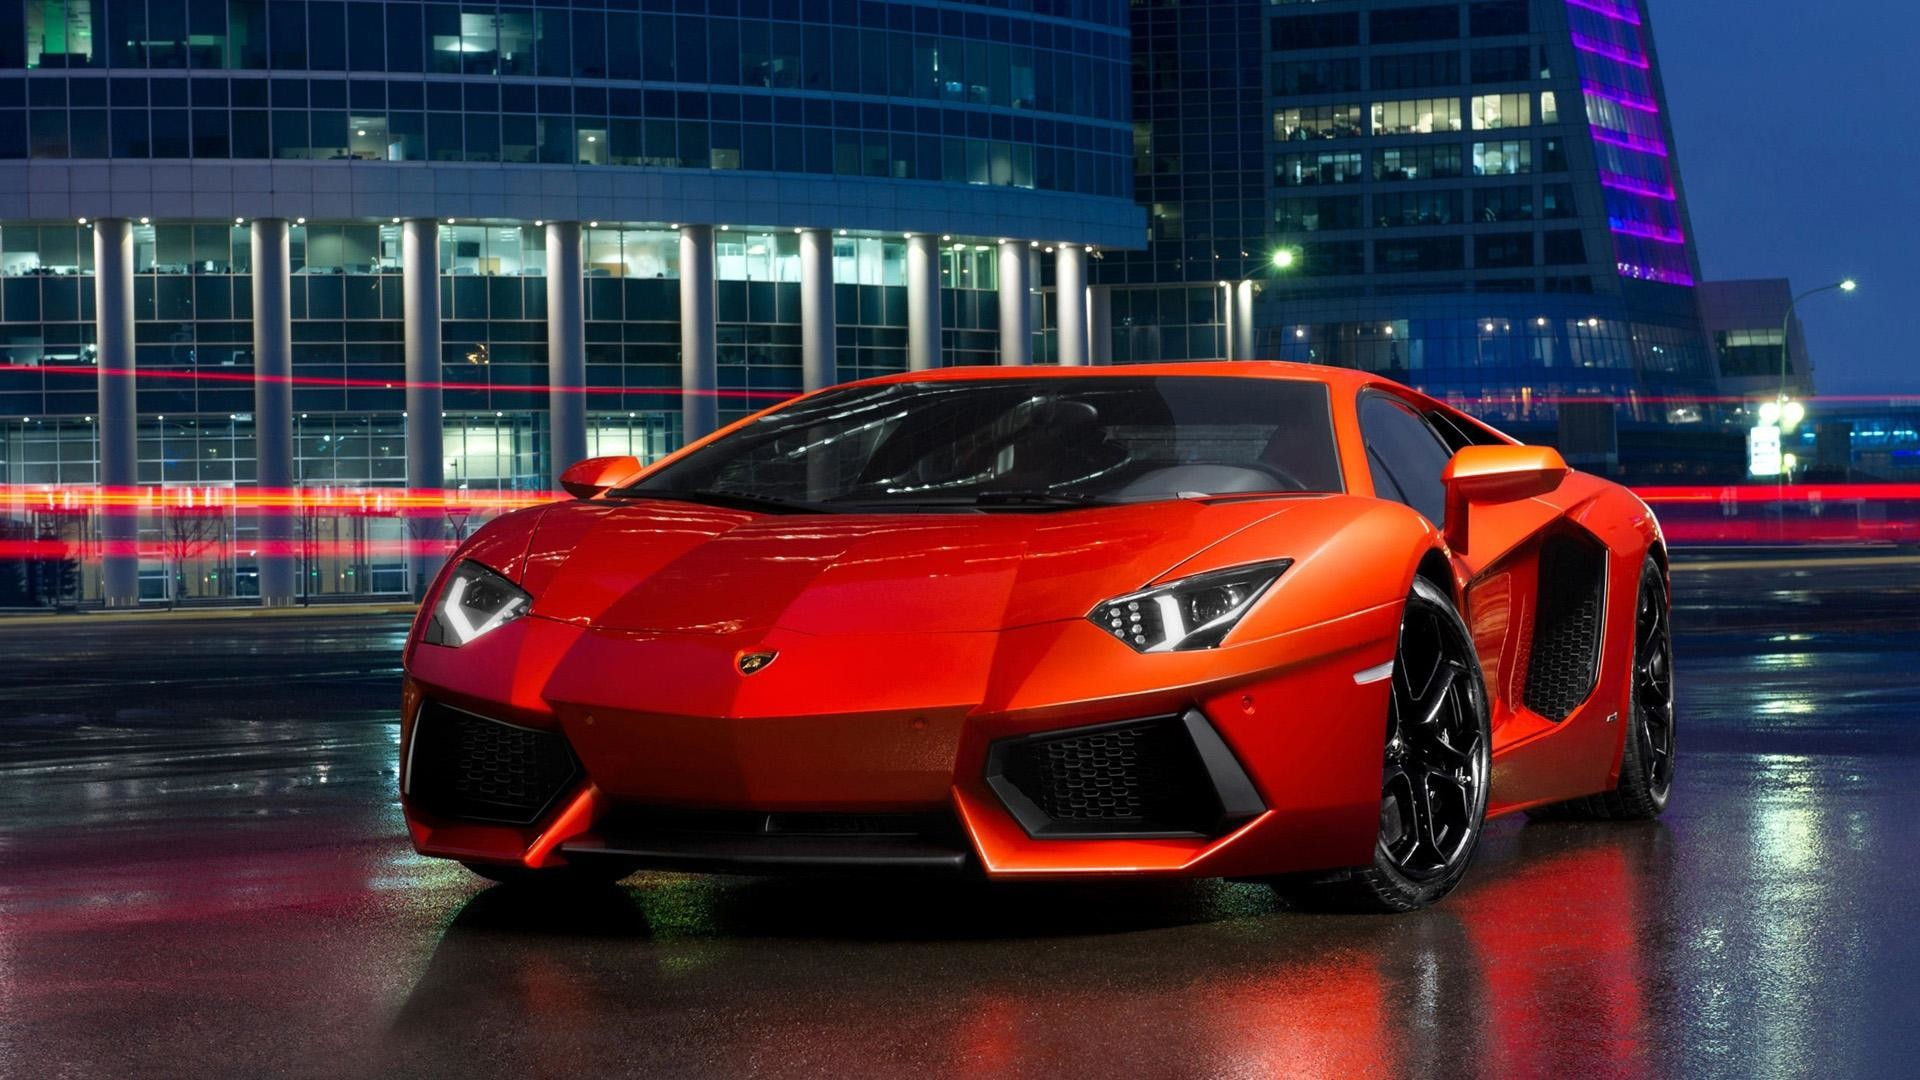 Sports Cars Wallpapers HD 73 images 1920x1080